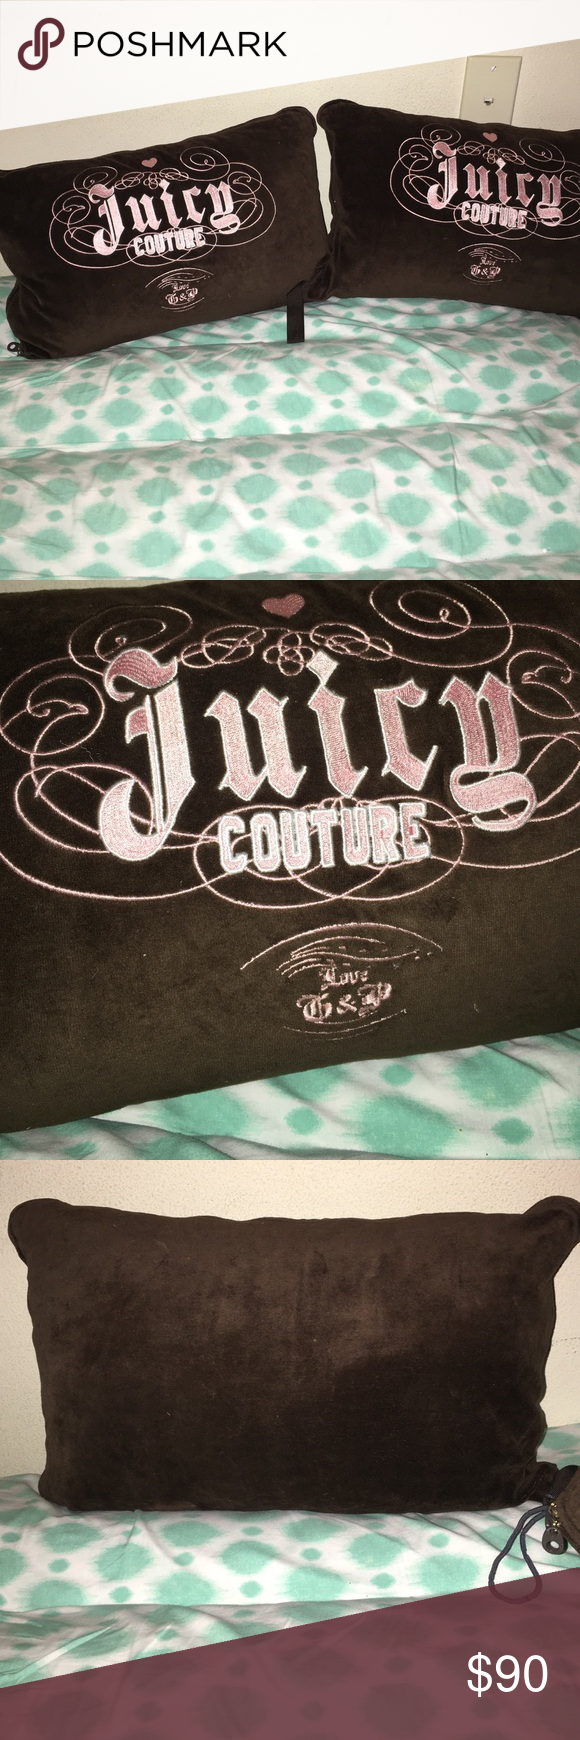 Juicy Couture Pillow Cases NWOT! No damage. AUTHENTIC! OPEN TO OFFERS! No trades on this item. Juicy Couture Accessories